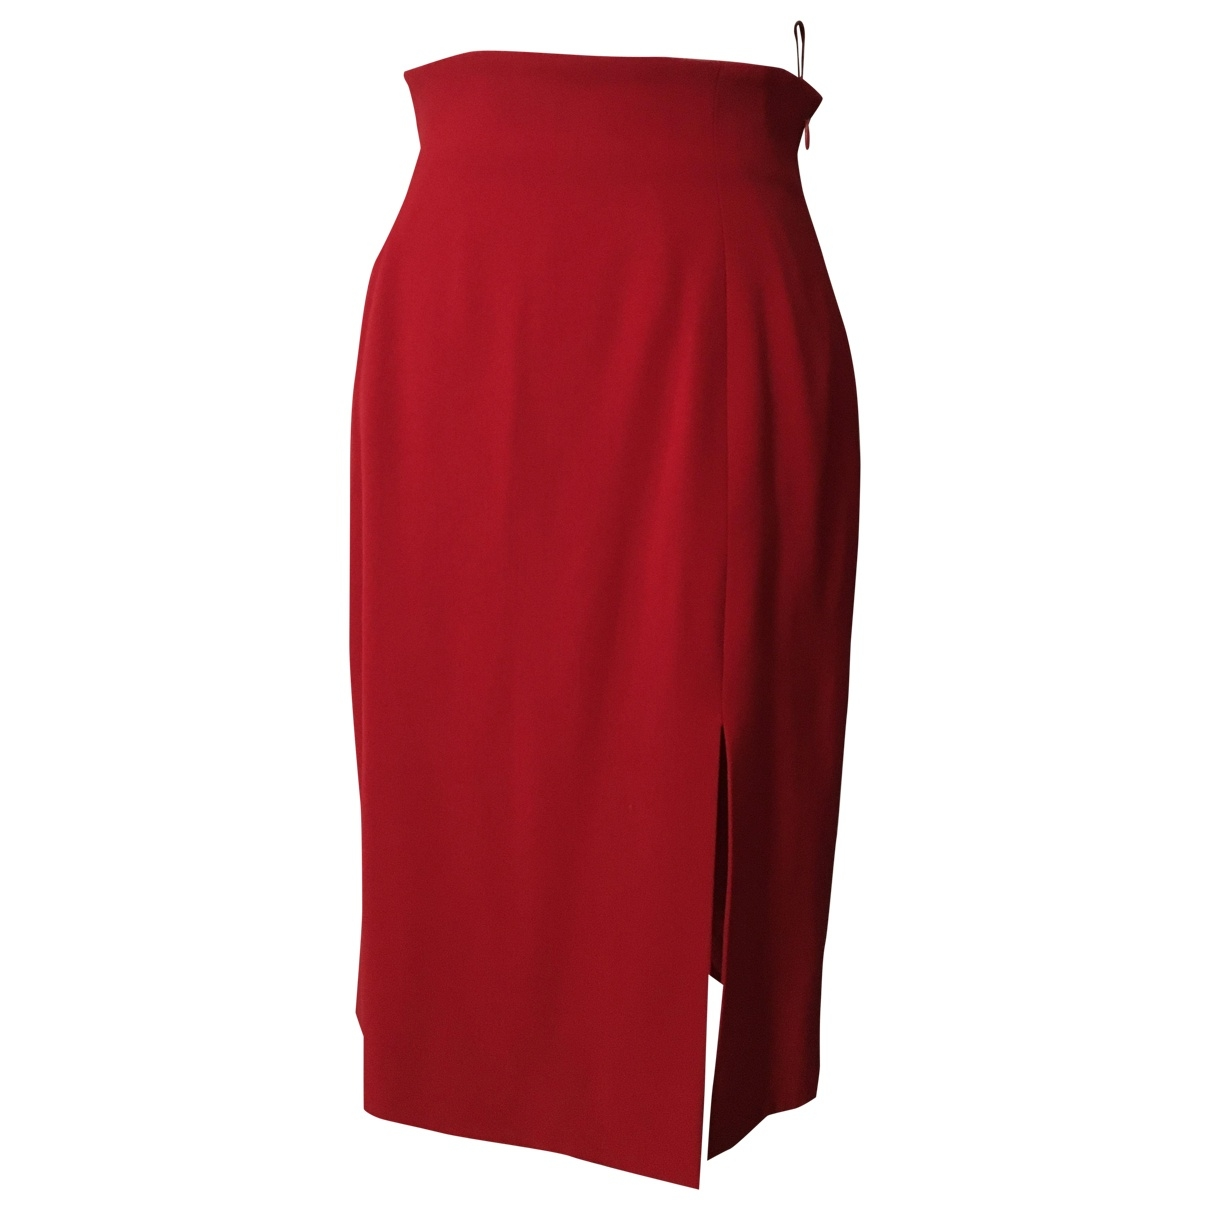 Celine \N Red Wool skirt for Women 38 FR